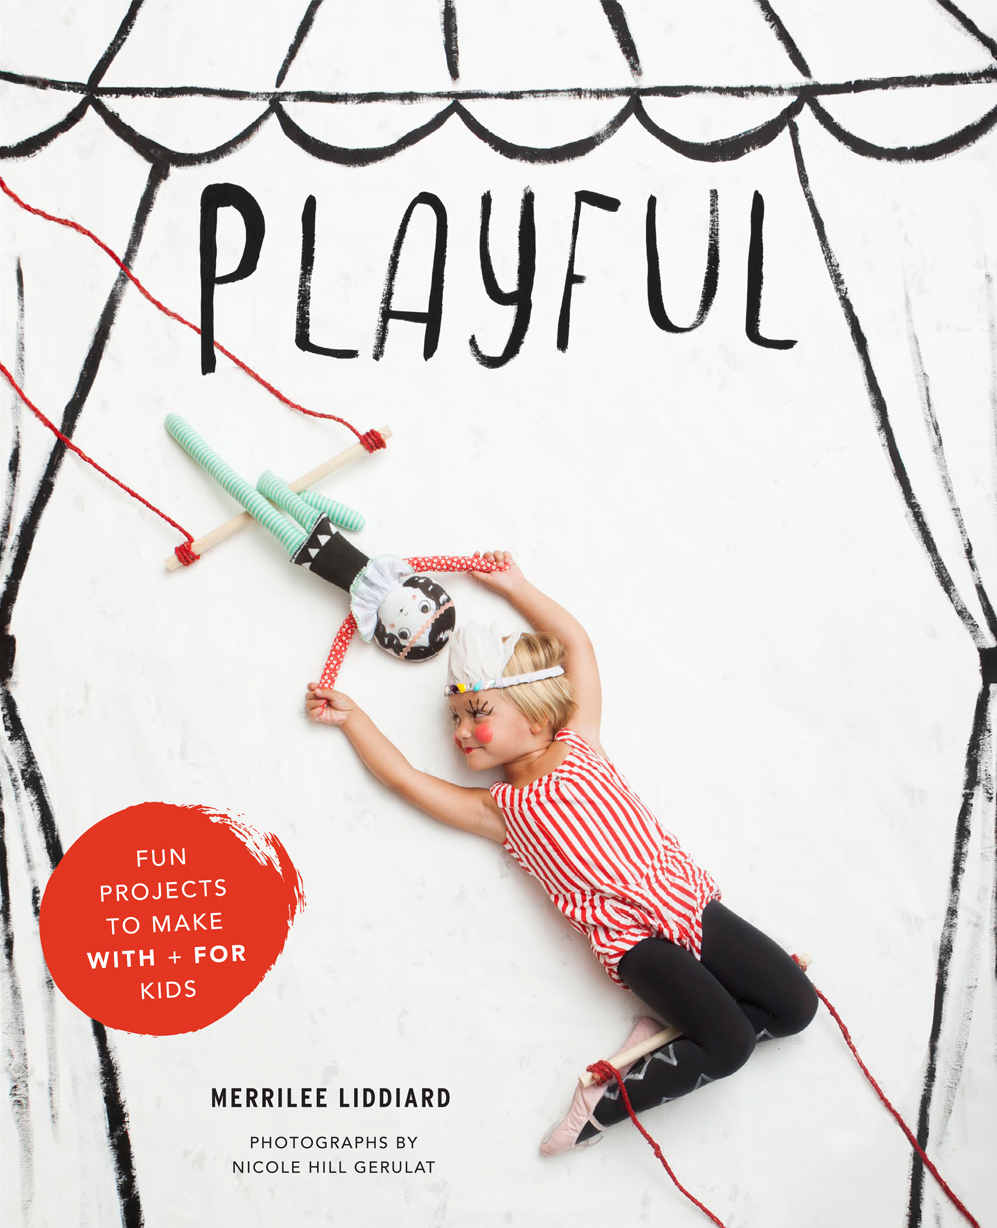 Liddiard's new book  PLAYFUL